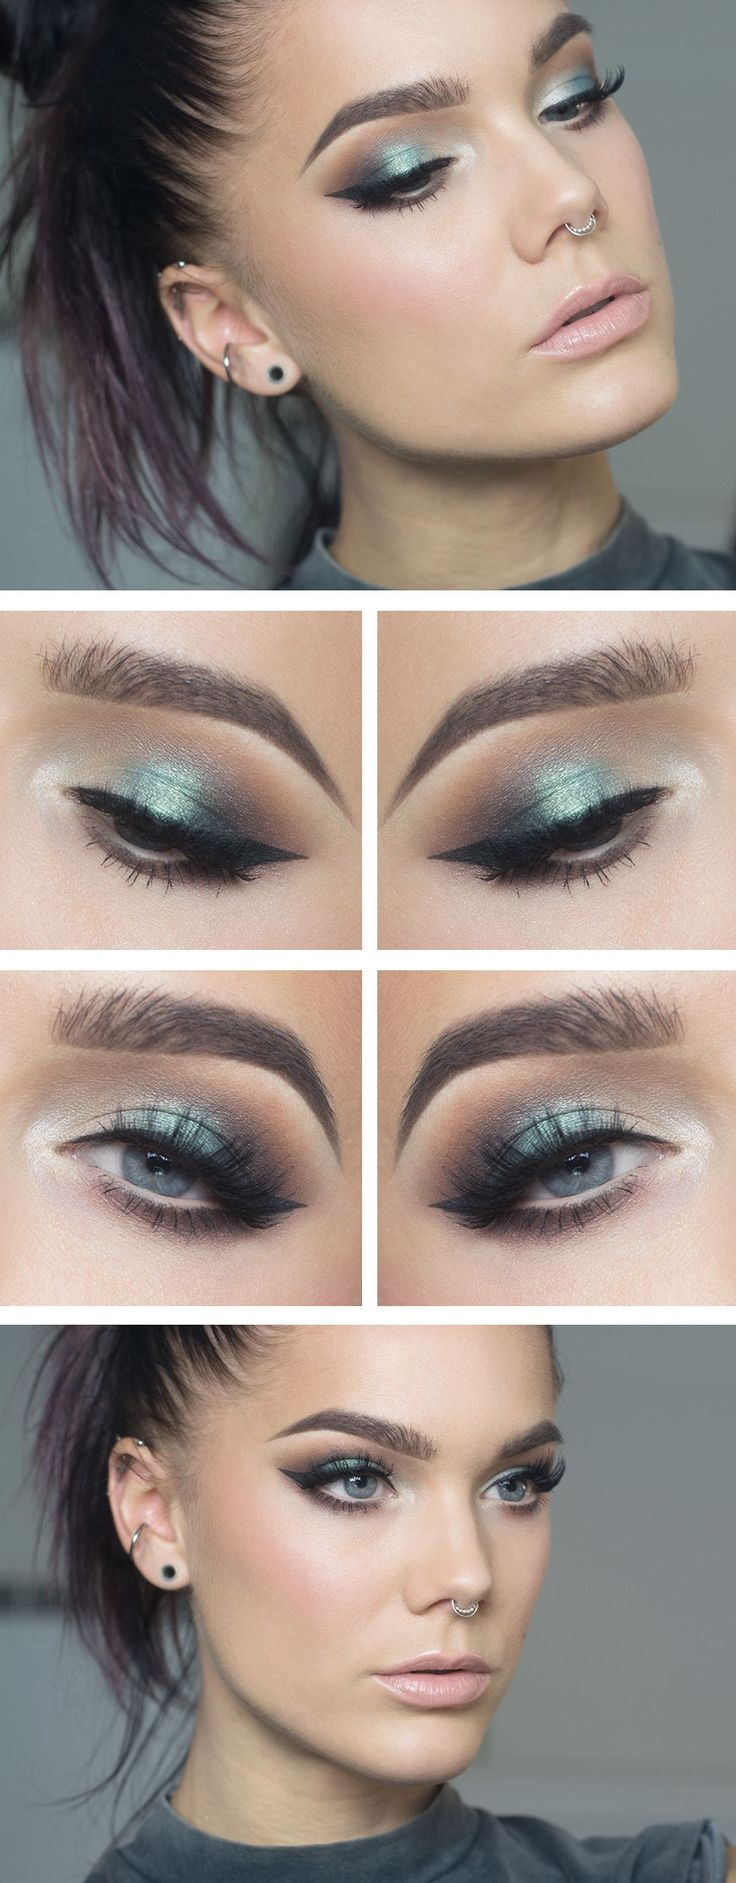 Too faced shadow insurance Make up geek eyeshadow Envy Make up geek eyeshadow Steamy Anastasia Tamanna palette Anastasia Amreze palette House of lashes Siren false eyelashes Glo minerals glo precision eye pencil Peach Oriflame the one lash resistance mascara